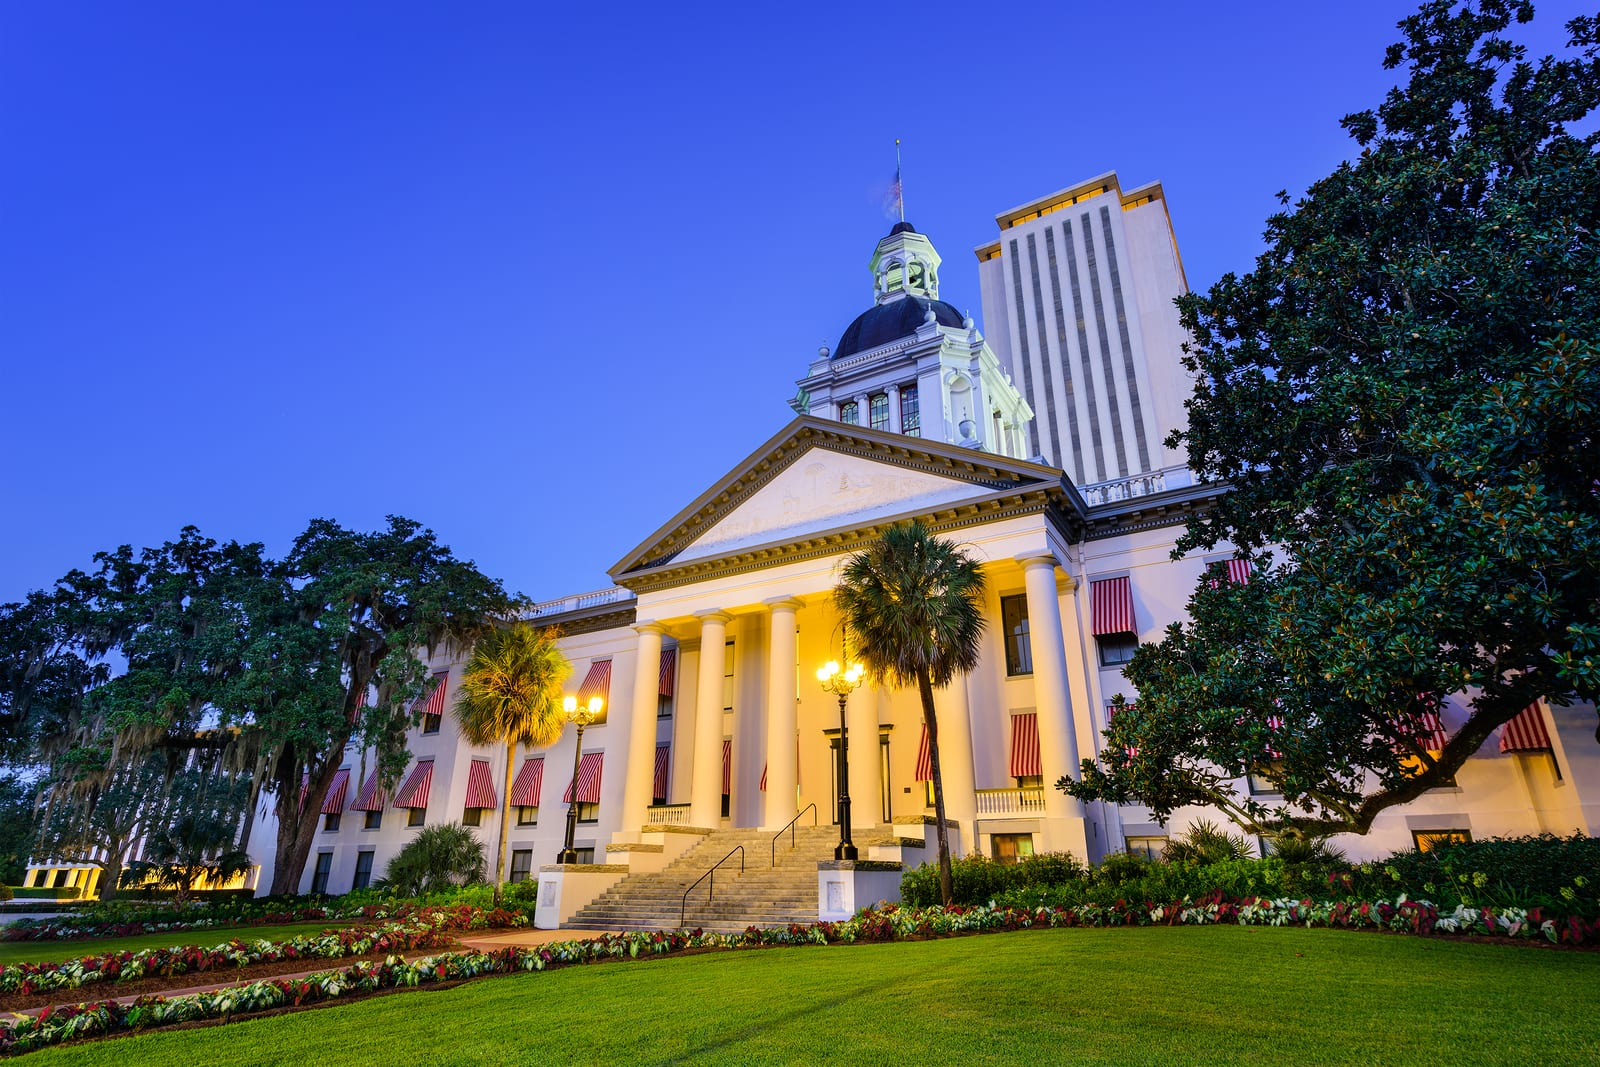 Florida Governor Ron DeSantis Appoints Anthony Miller to the Leon County Court